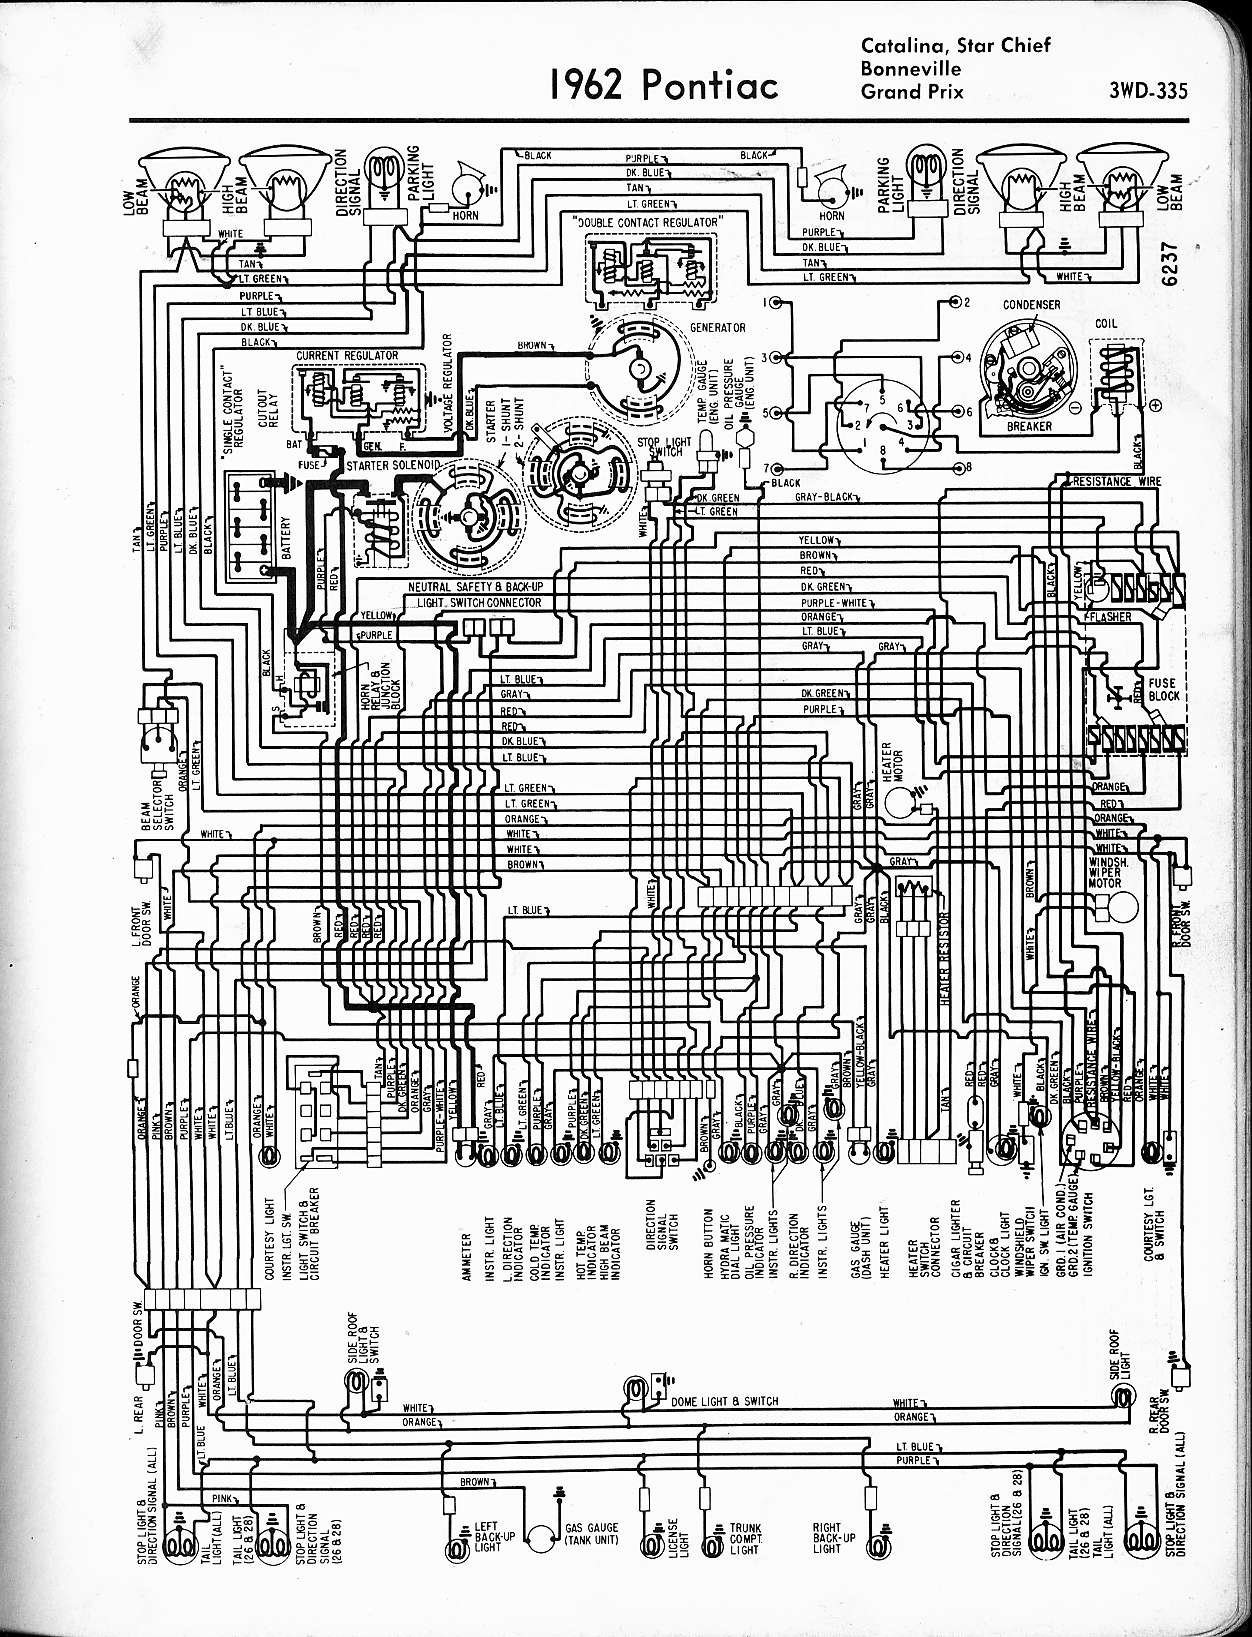 Pontiac Wiring Harness Diagram Reveolution Of Diagrams 1997 Sunfire 2 4 1957 1965 2000 Radio 1964 Bonneville